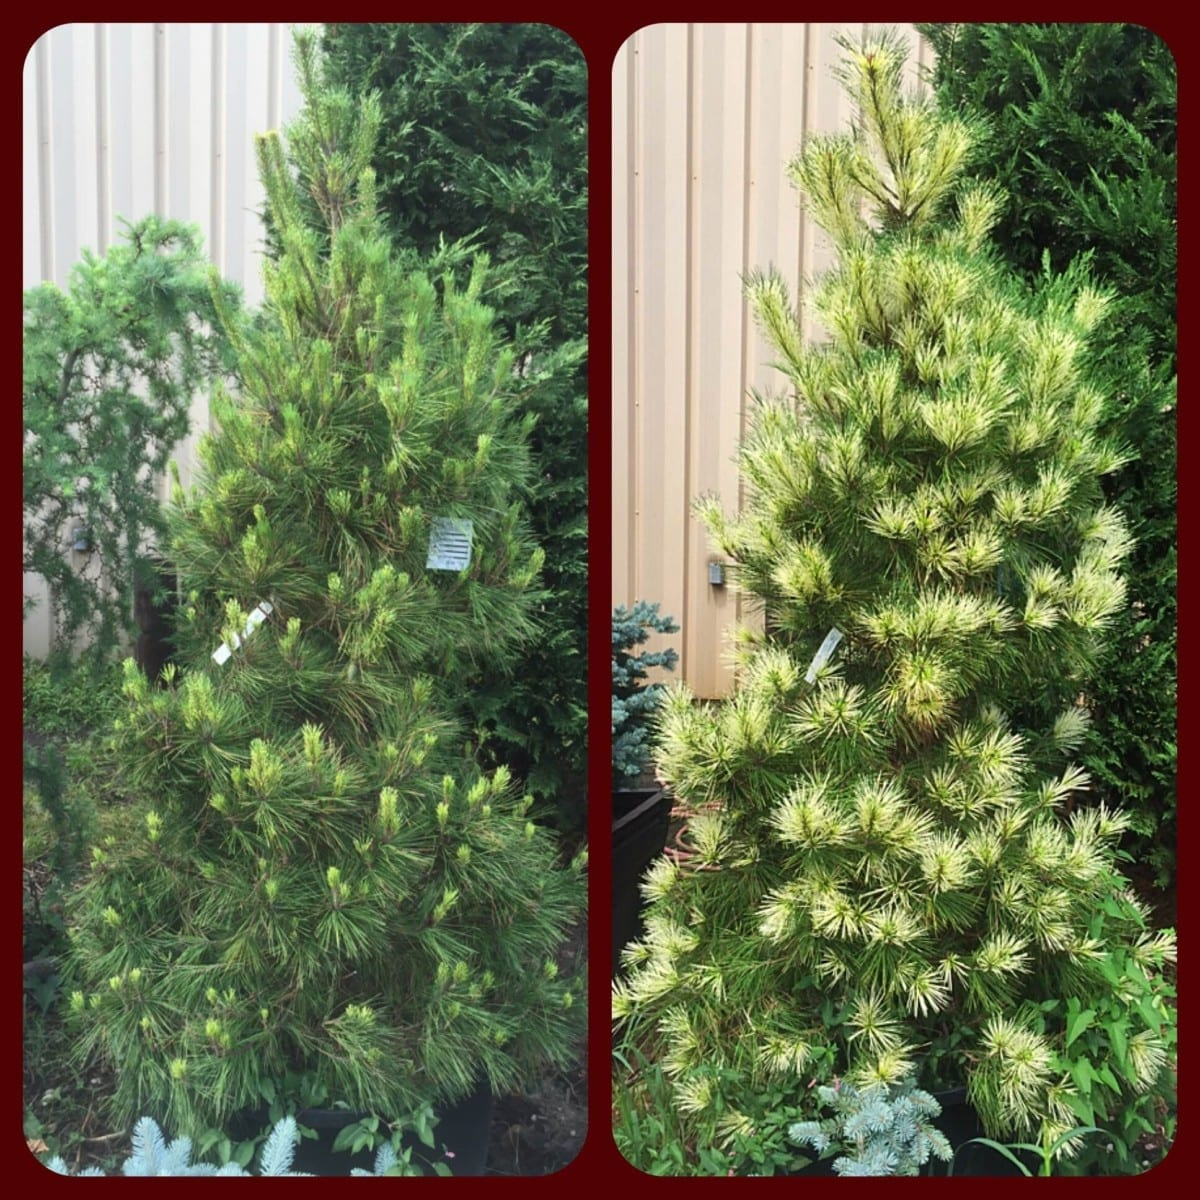 Dragon Eye Pine, July 10th (Right) and August 10th (Left)